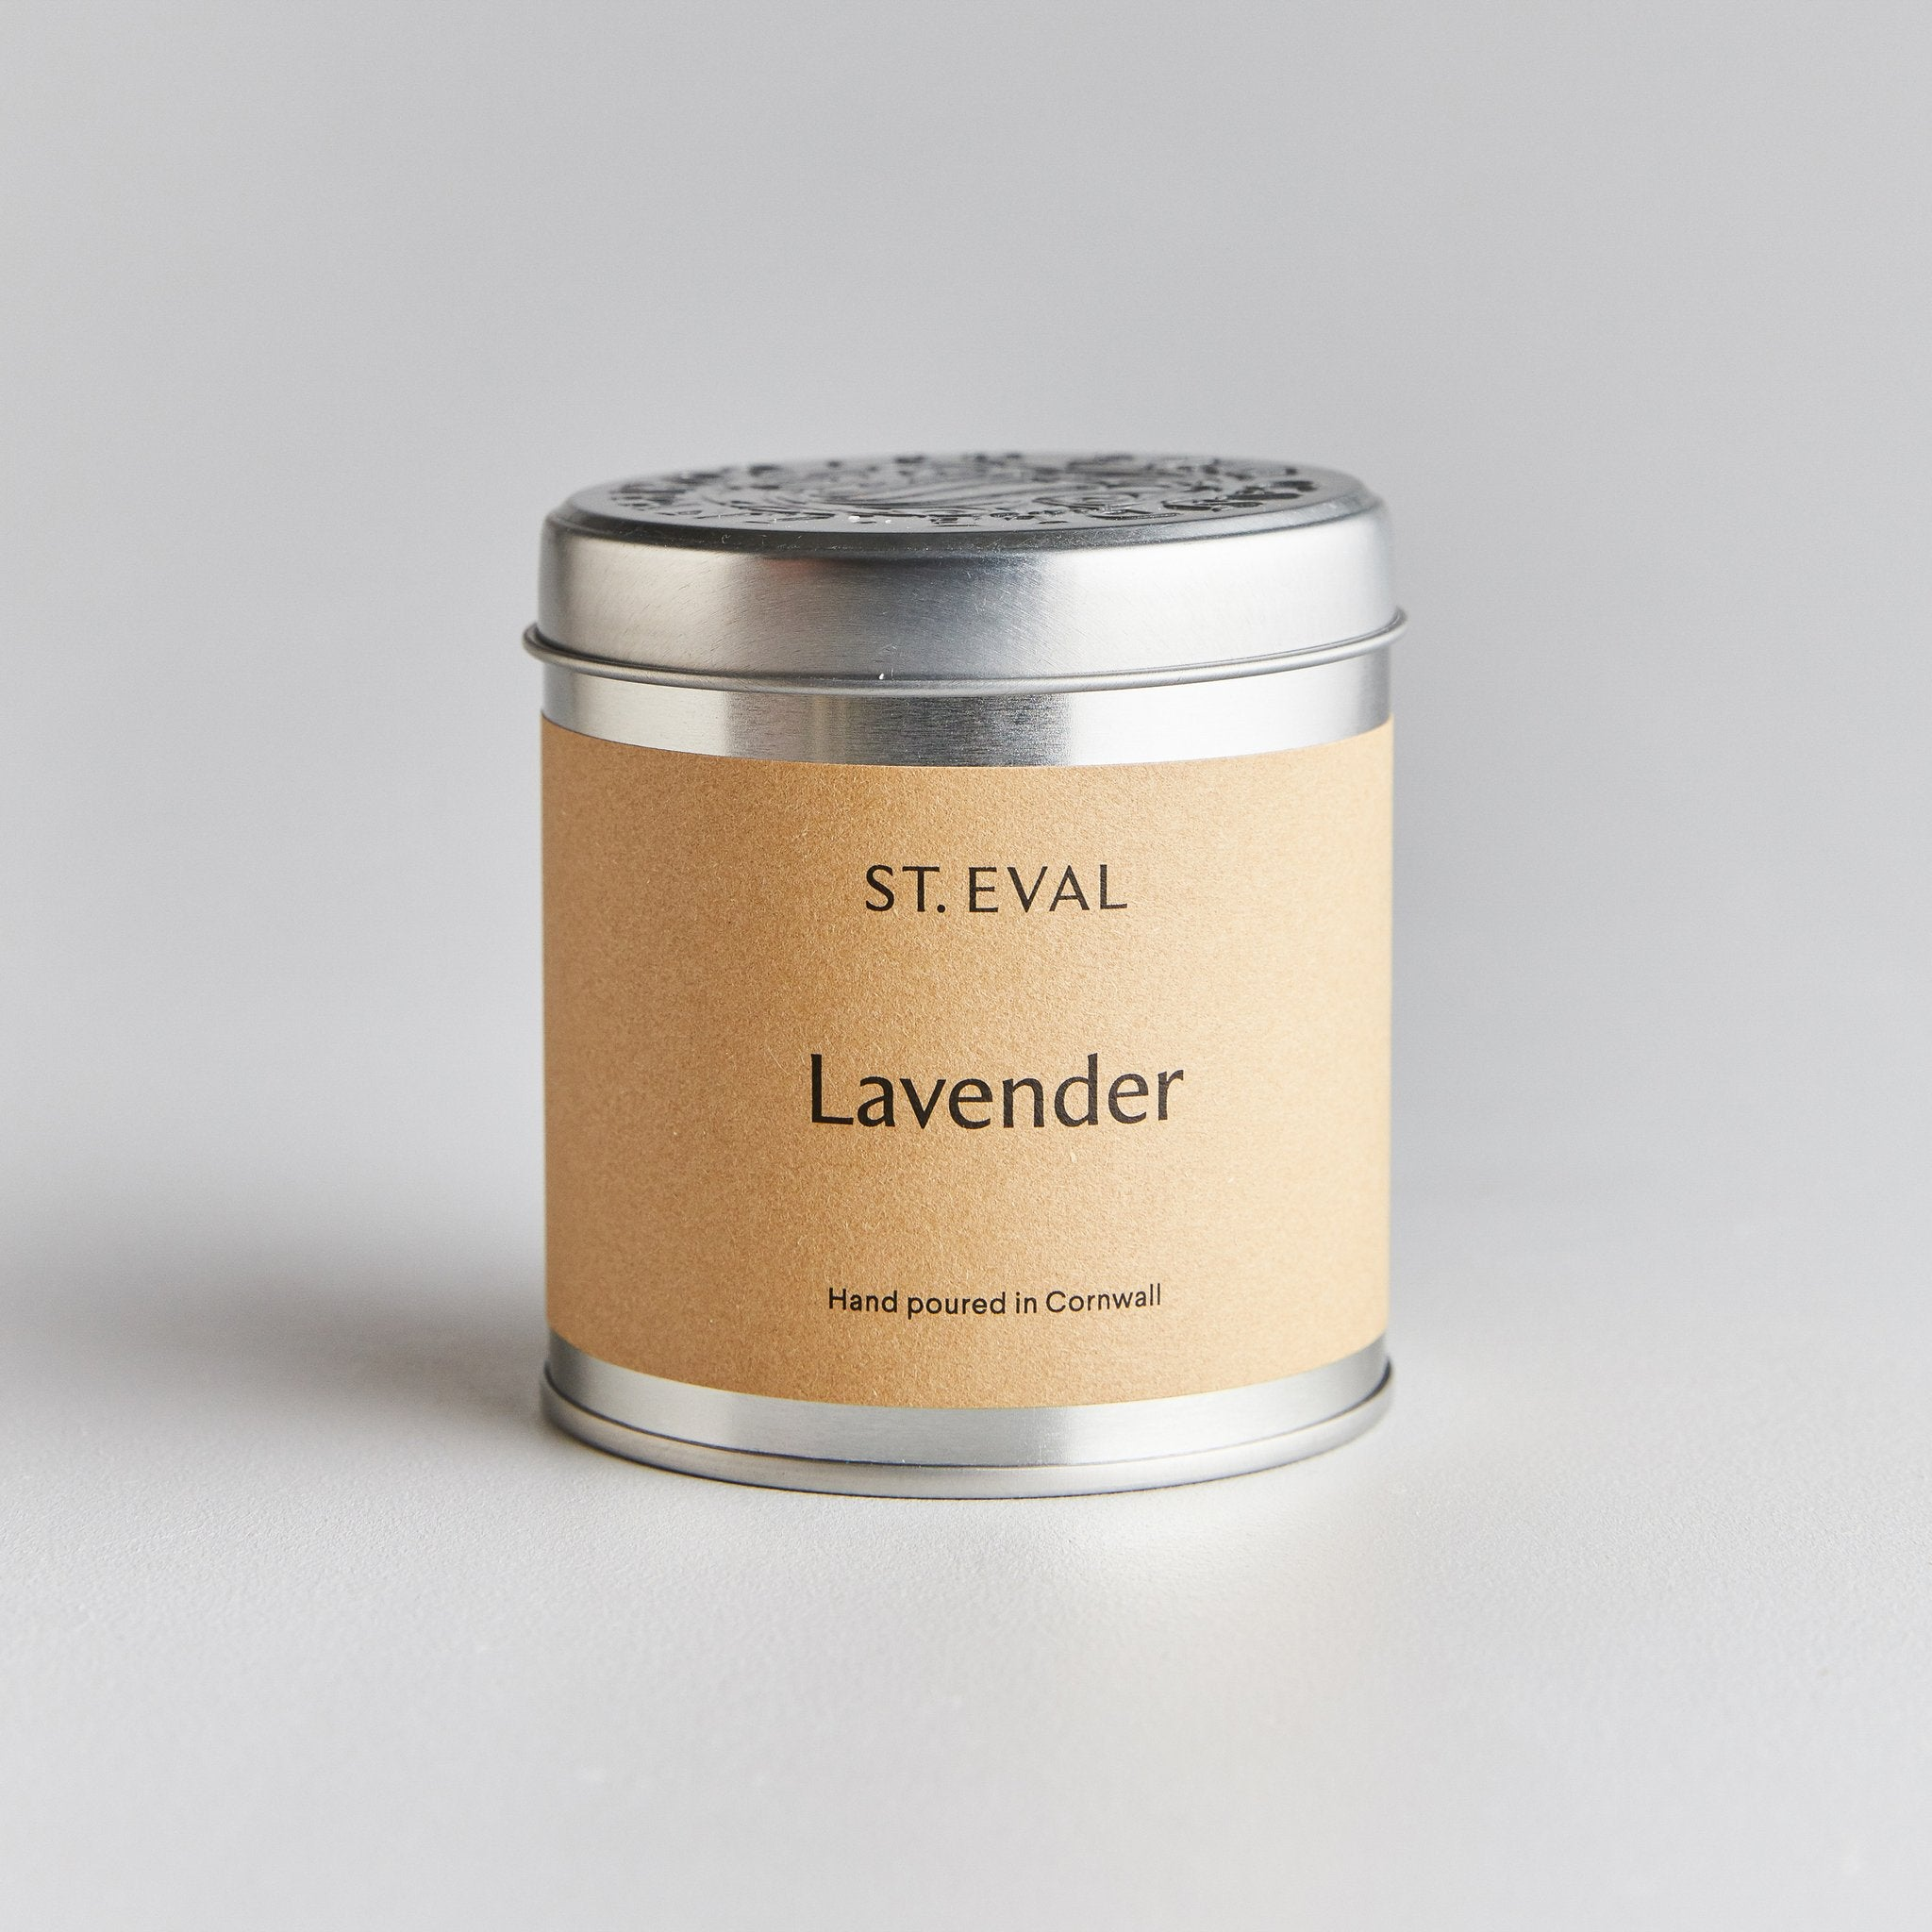 Lavender Scented Candle Tin from St Eval